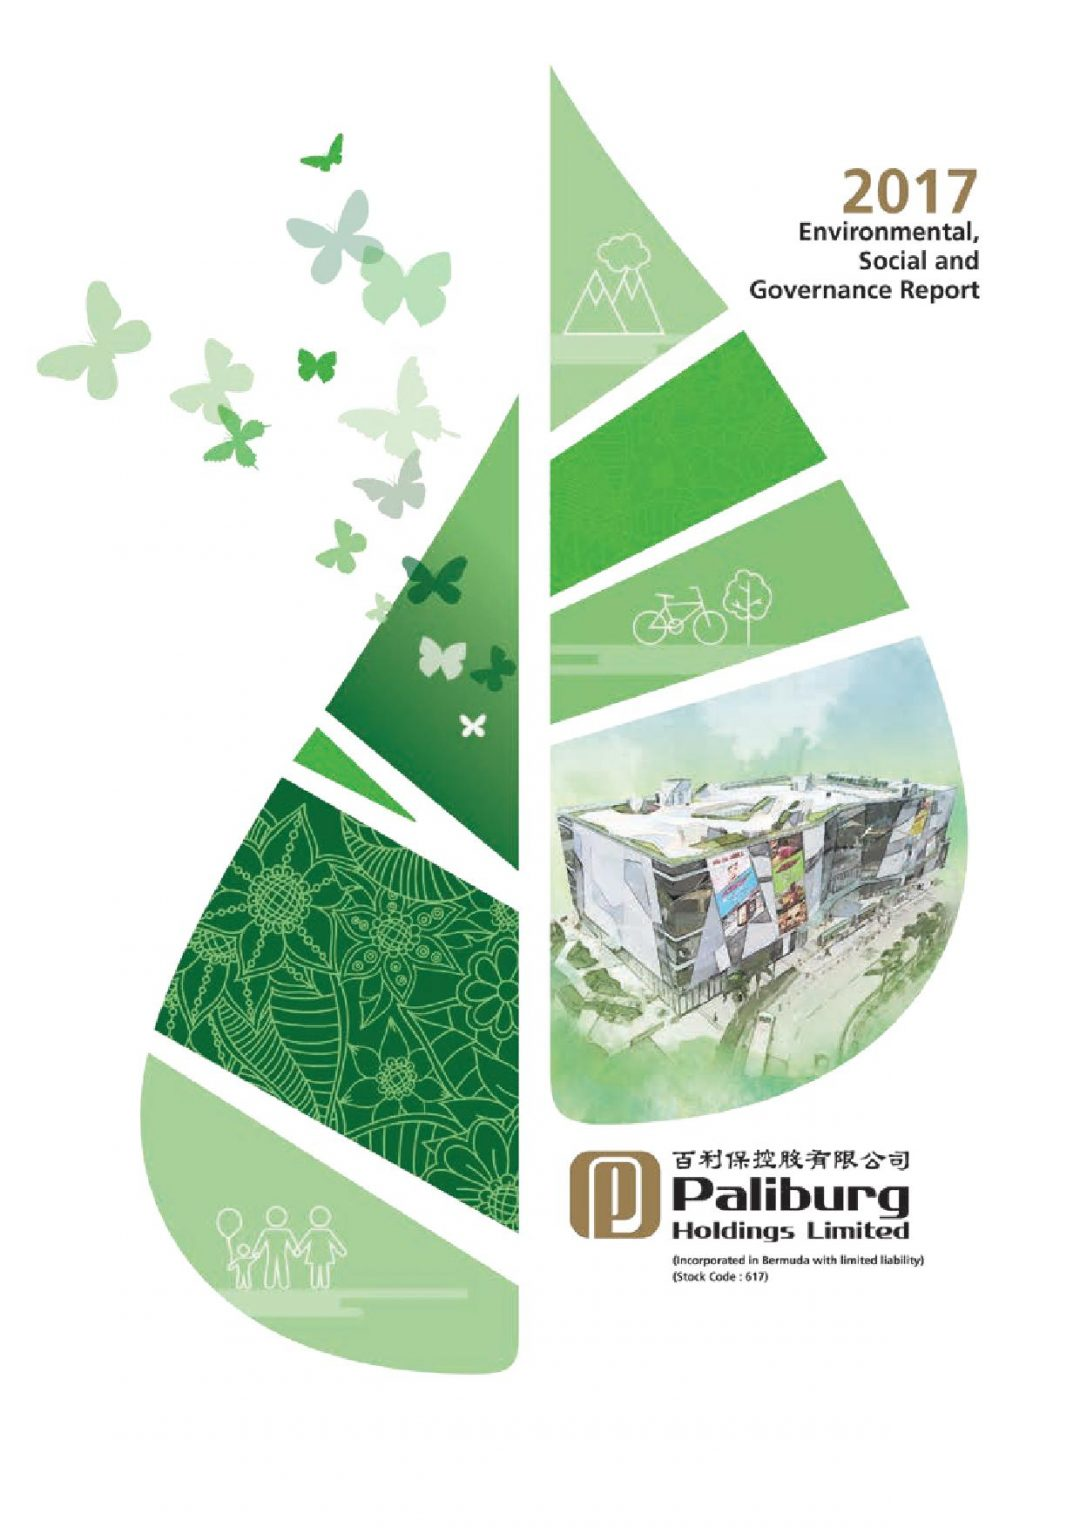 Paliburg Holdings Limited